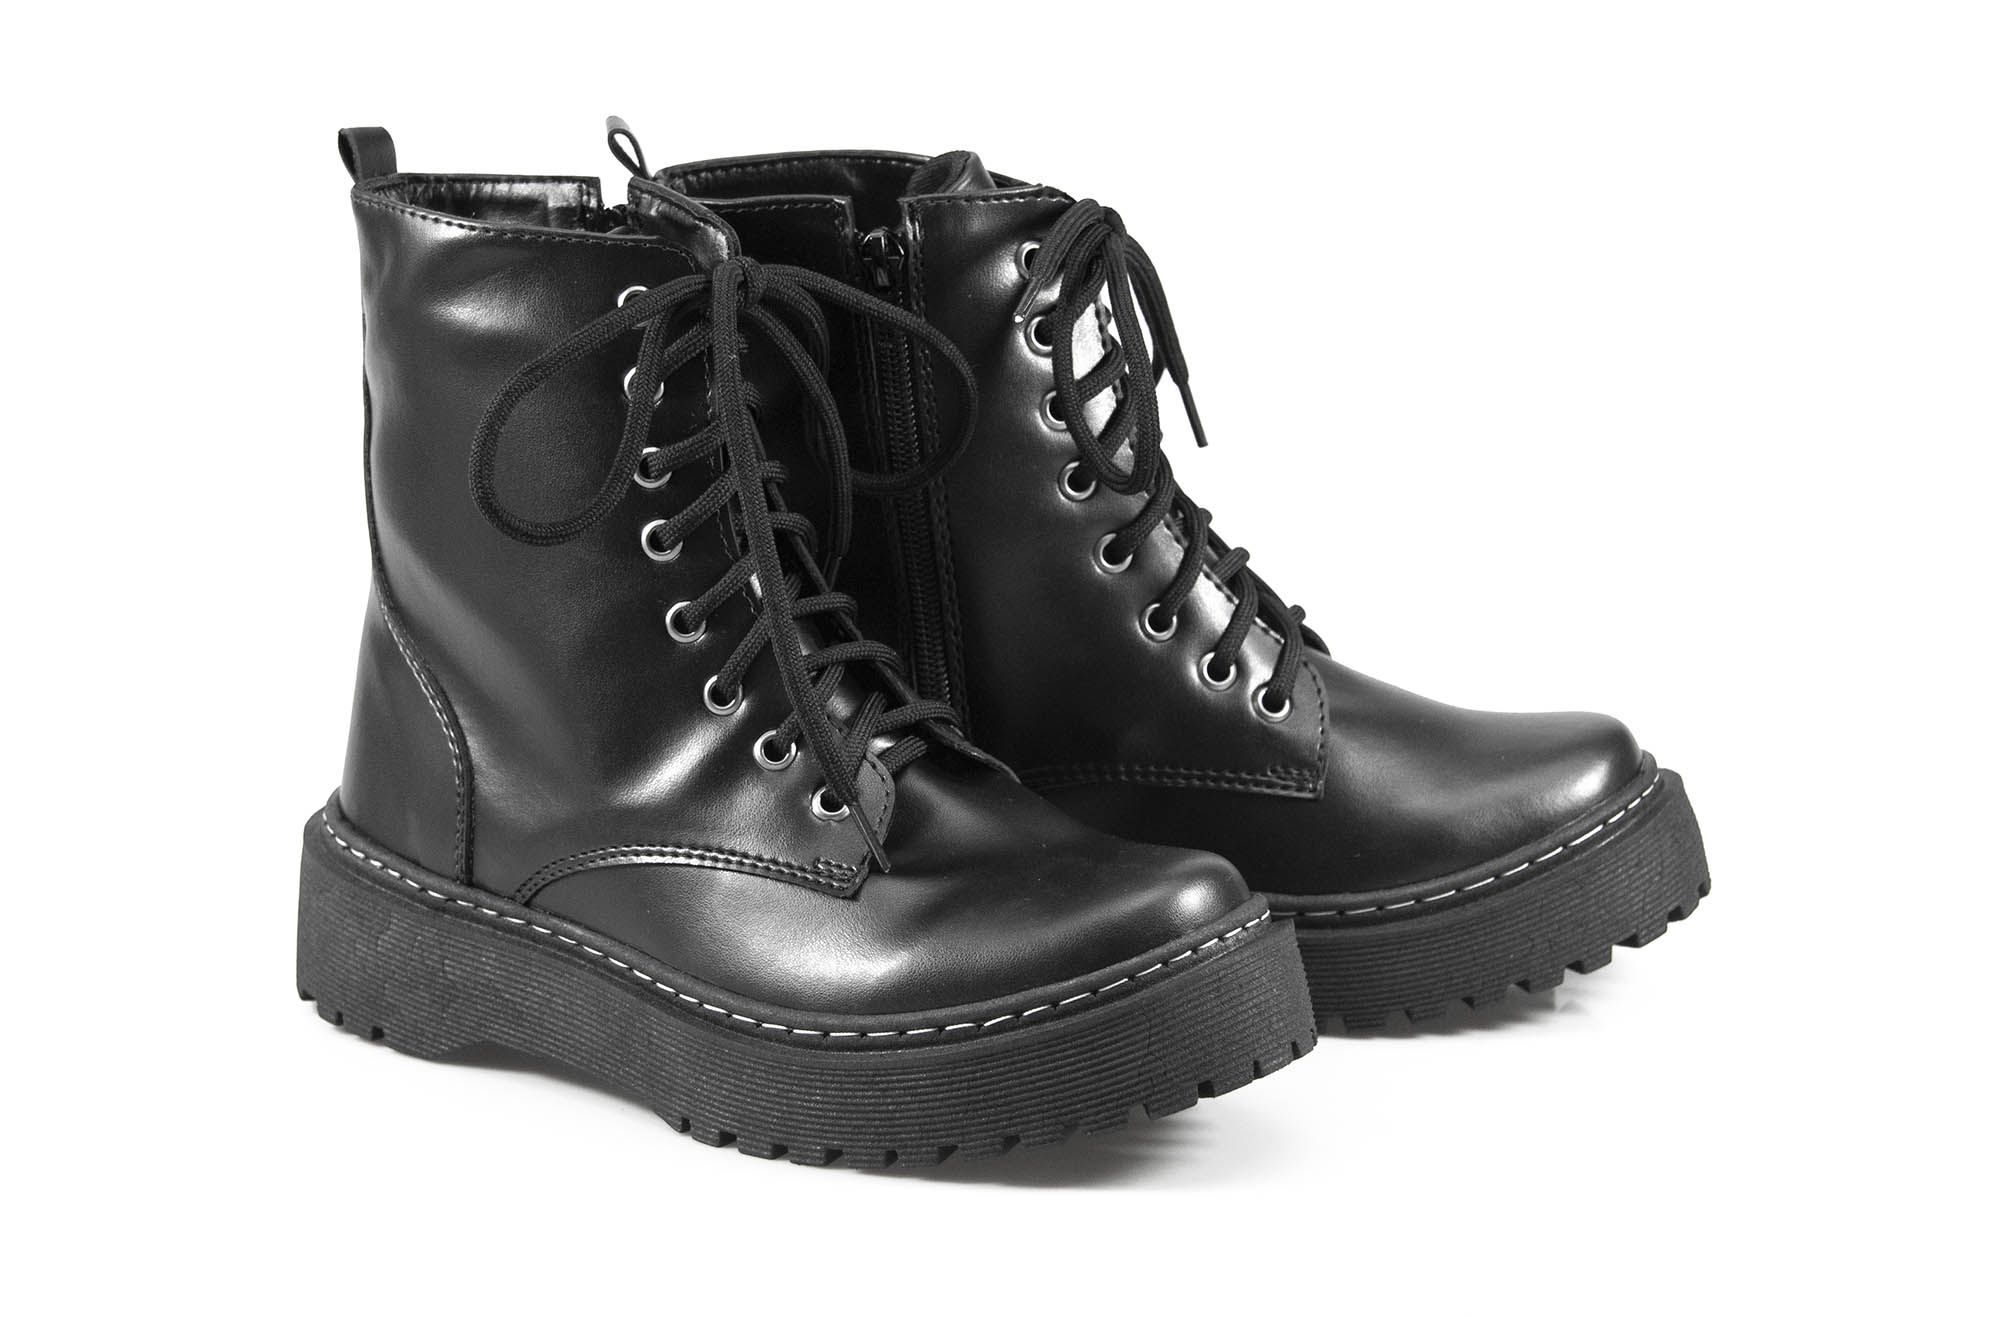 Boot Vegano Shoes Asplênio Preto - The Original Vegan